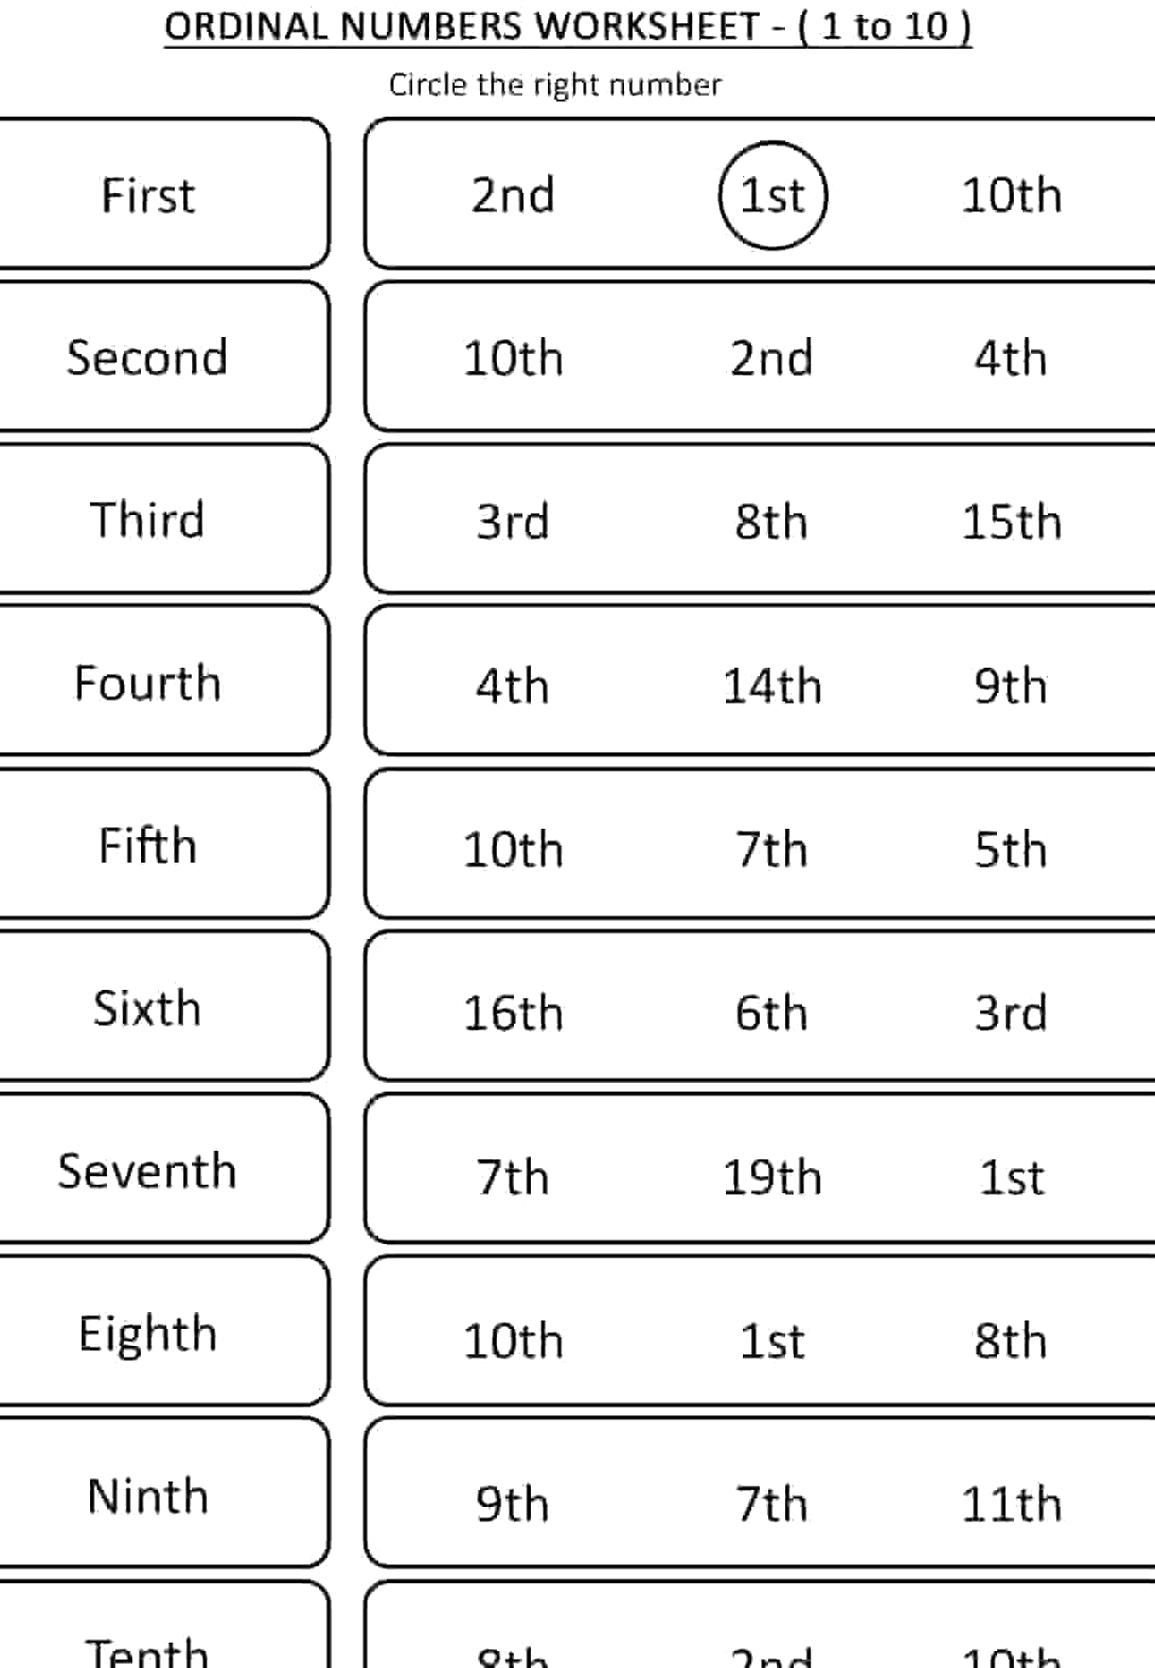 Free Downloadable English Ordinal Numbers Worksheets For